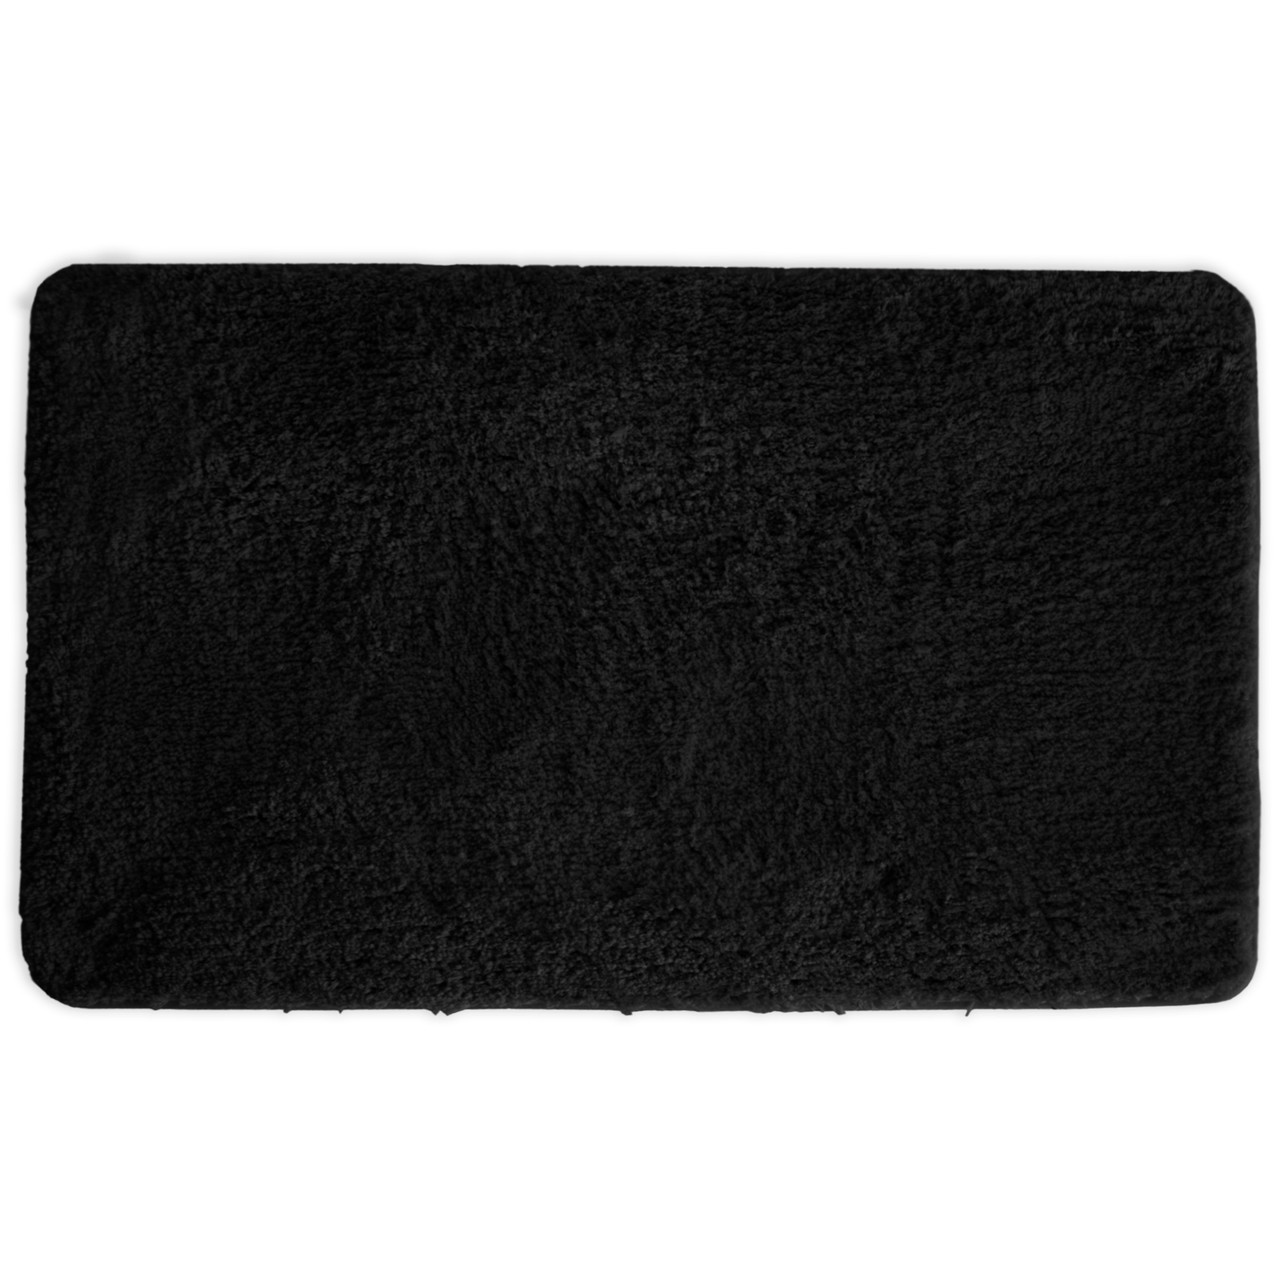 Mary Bathroom Rug, Luxury Soft Plush Shaggy Thick Fluffy Microfiber Bath  Mat, Non